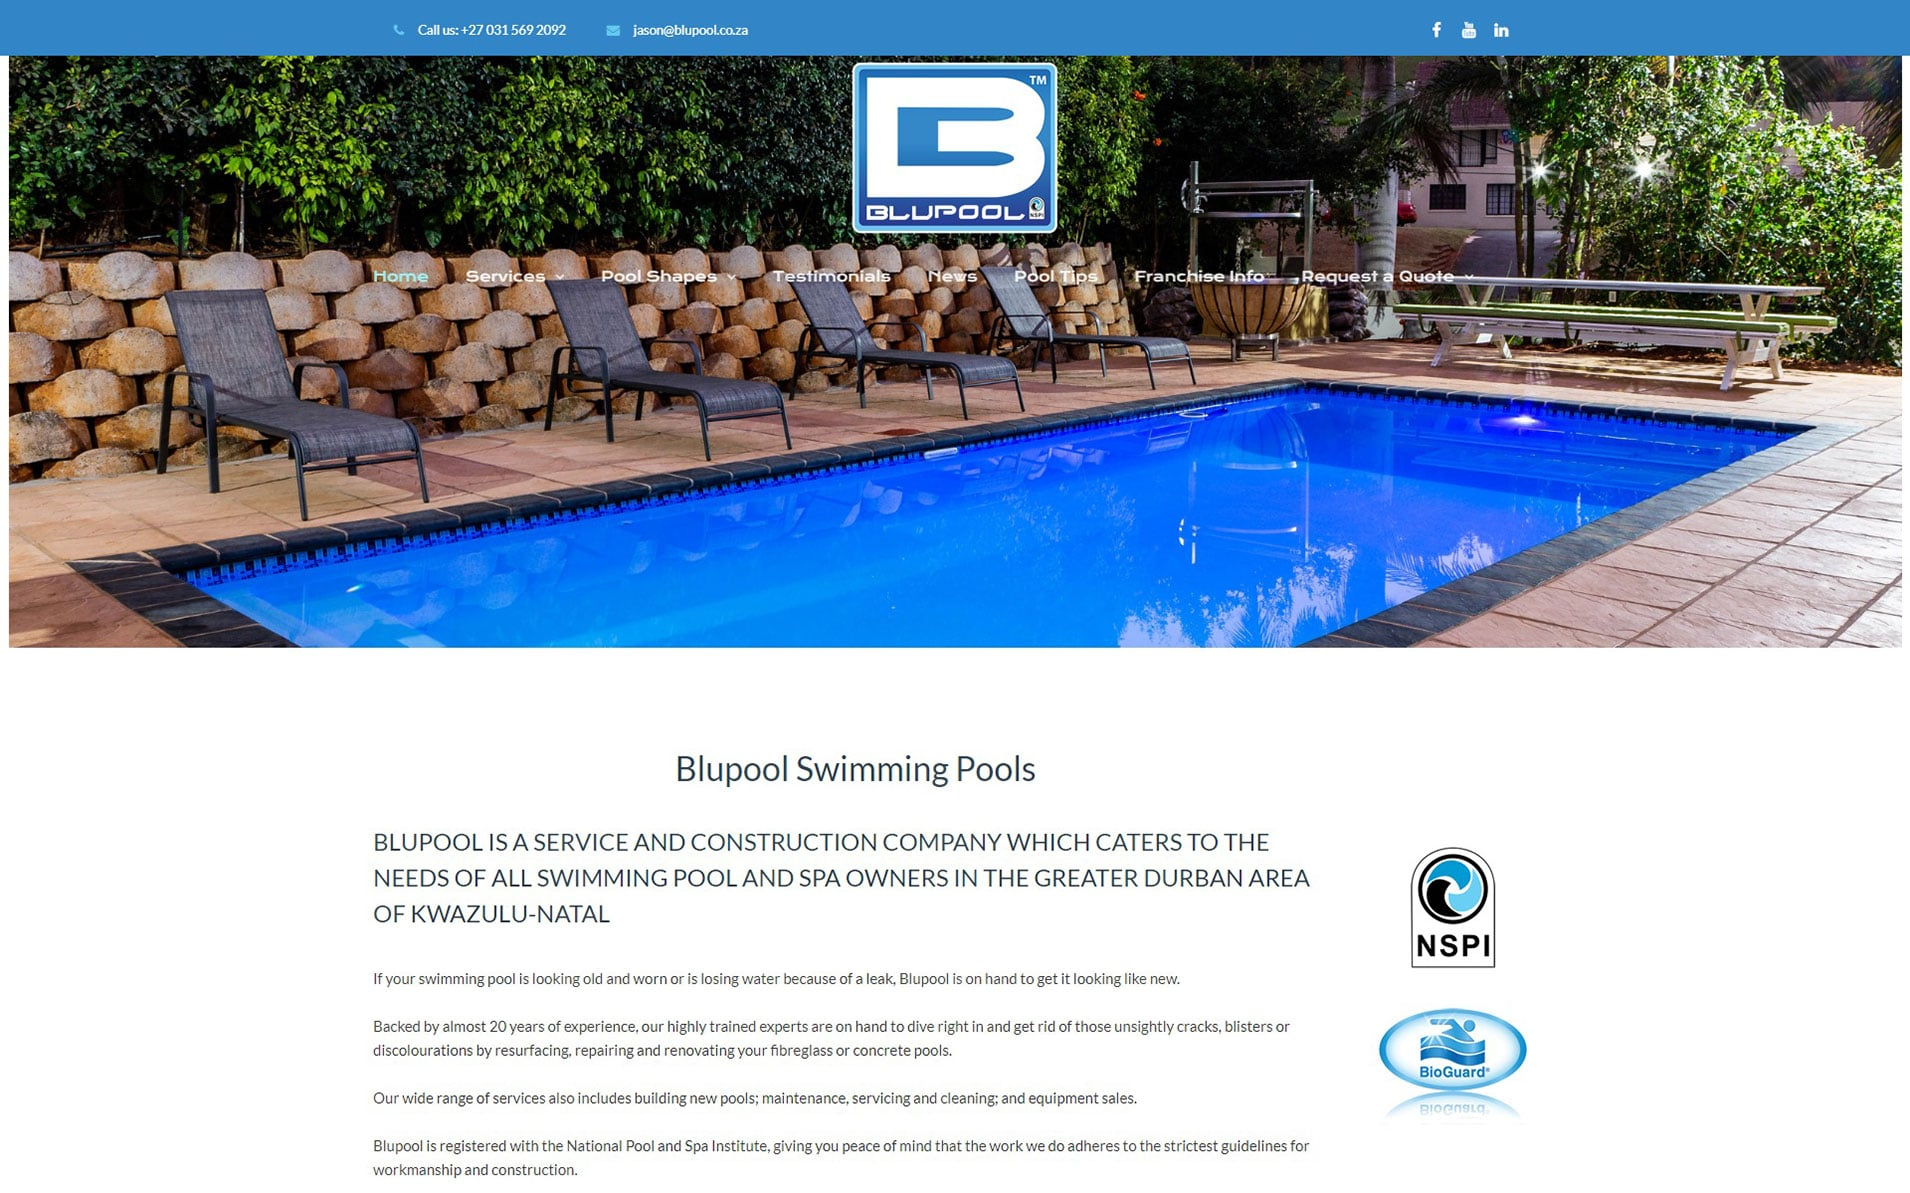 The Best Swimming Pool Company in Durban and KZN New Pools Pool Services Pool Chemicals Swimming Pool Equipment Blupool Swimming Pool Services